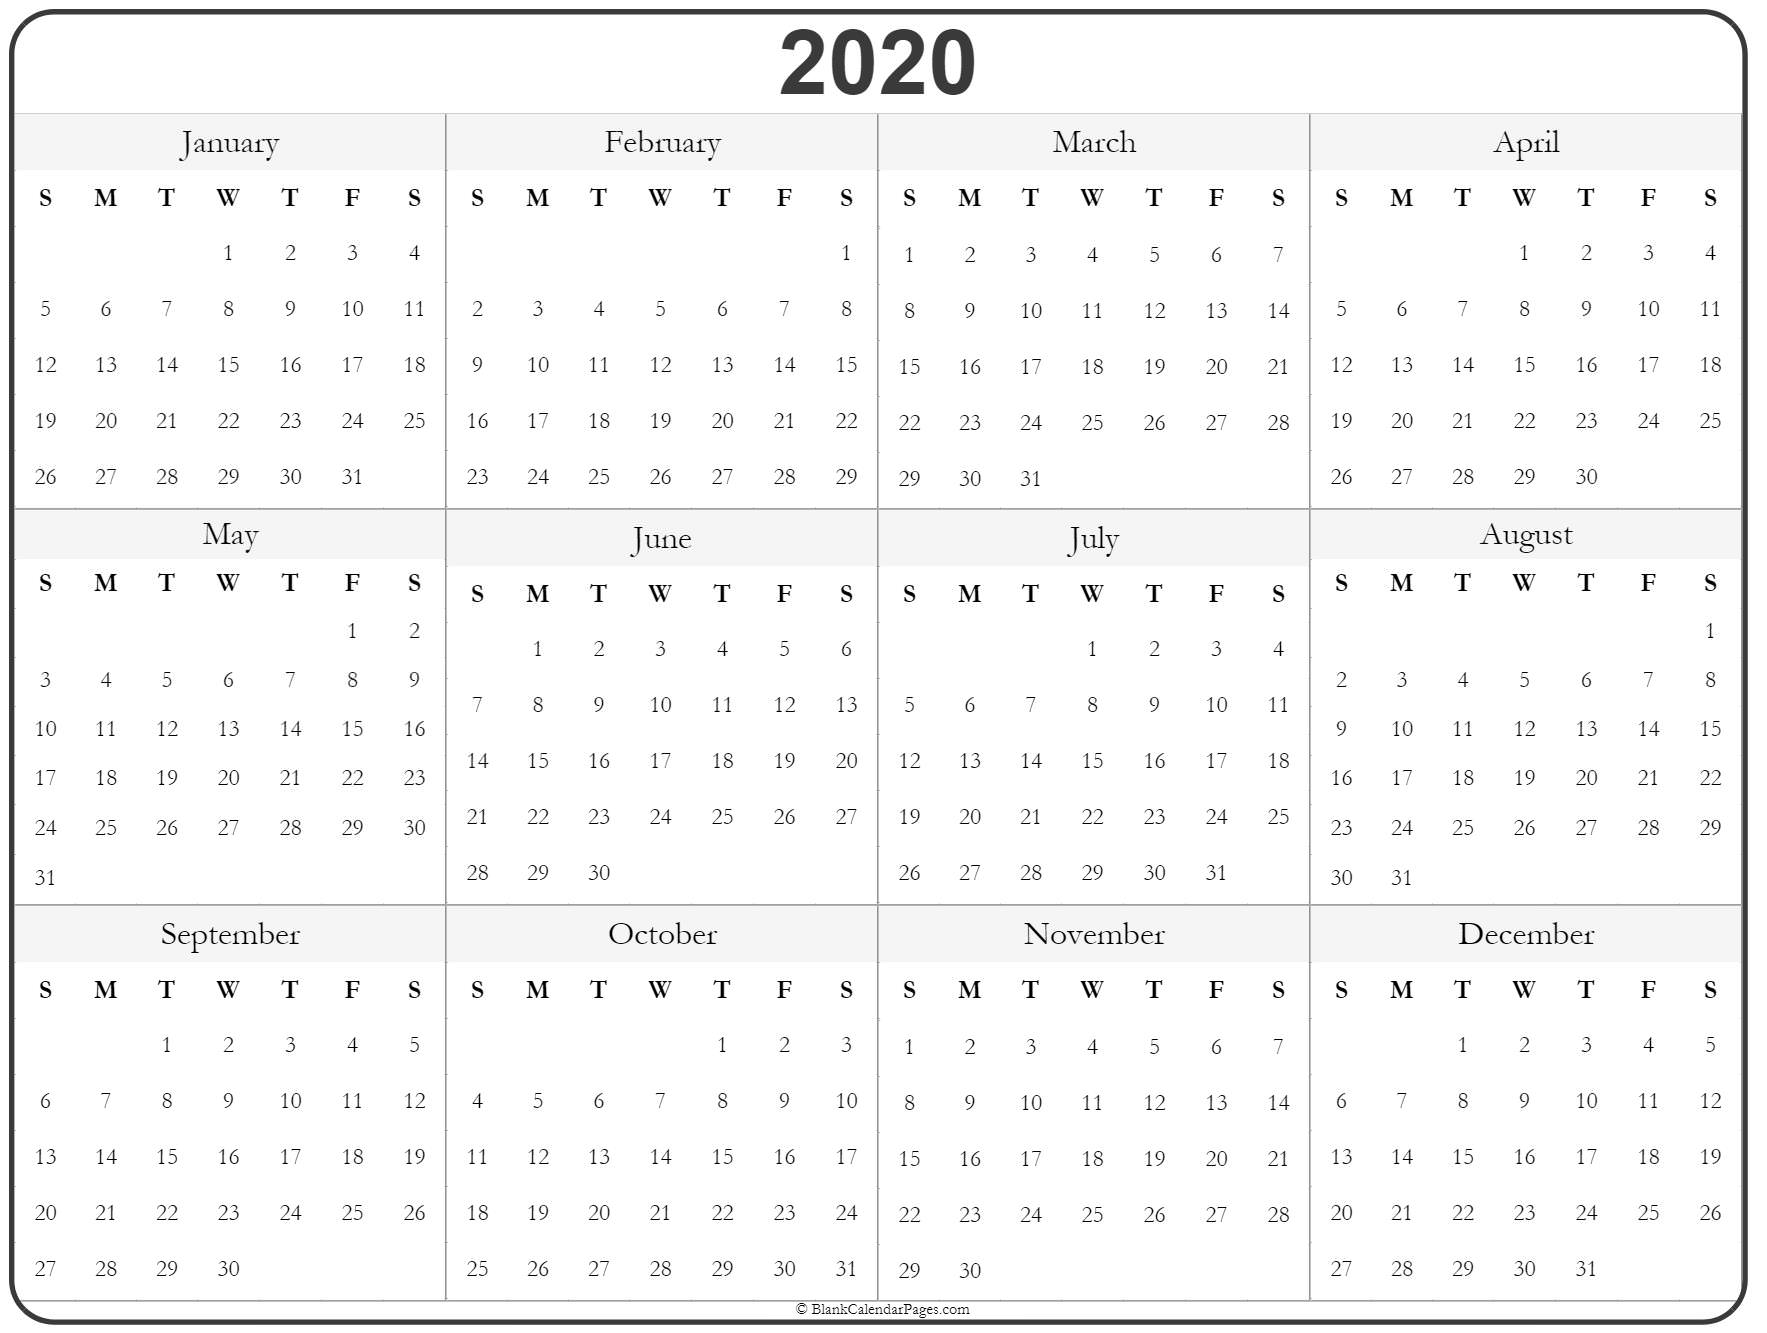 2020 Year Calendar Printable 2020 year calendar | yearly printable